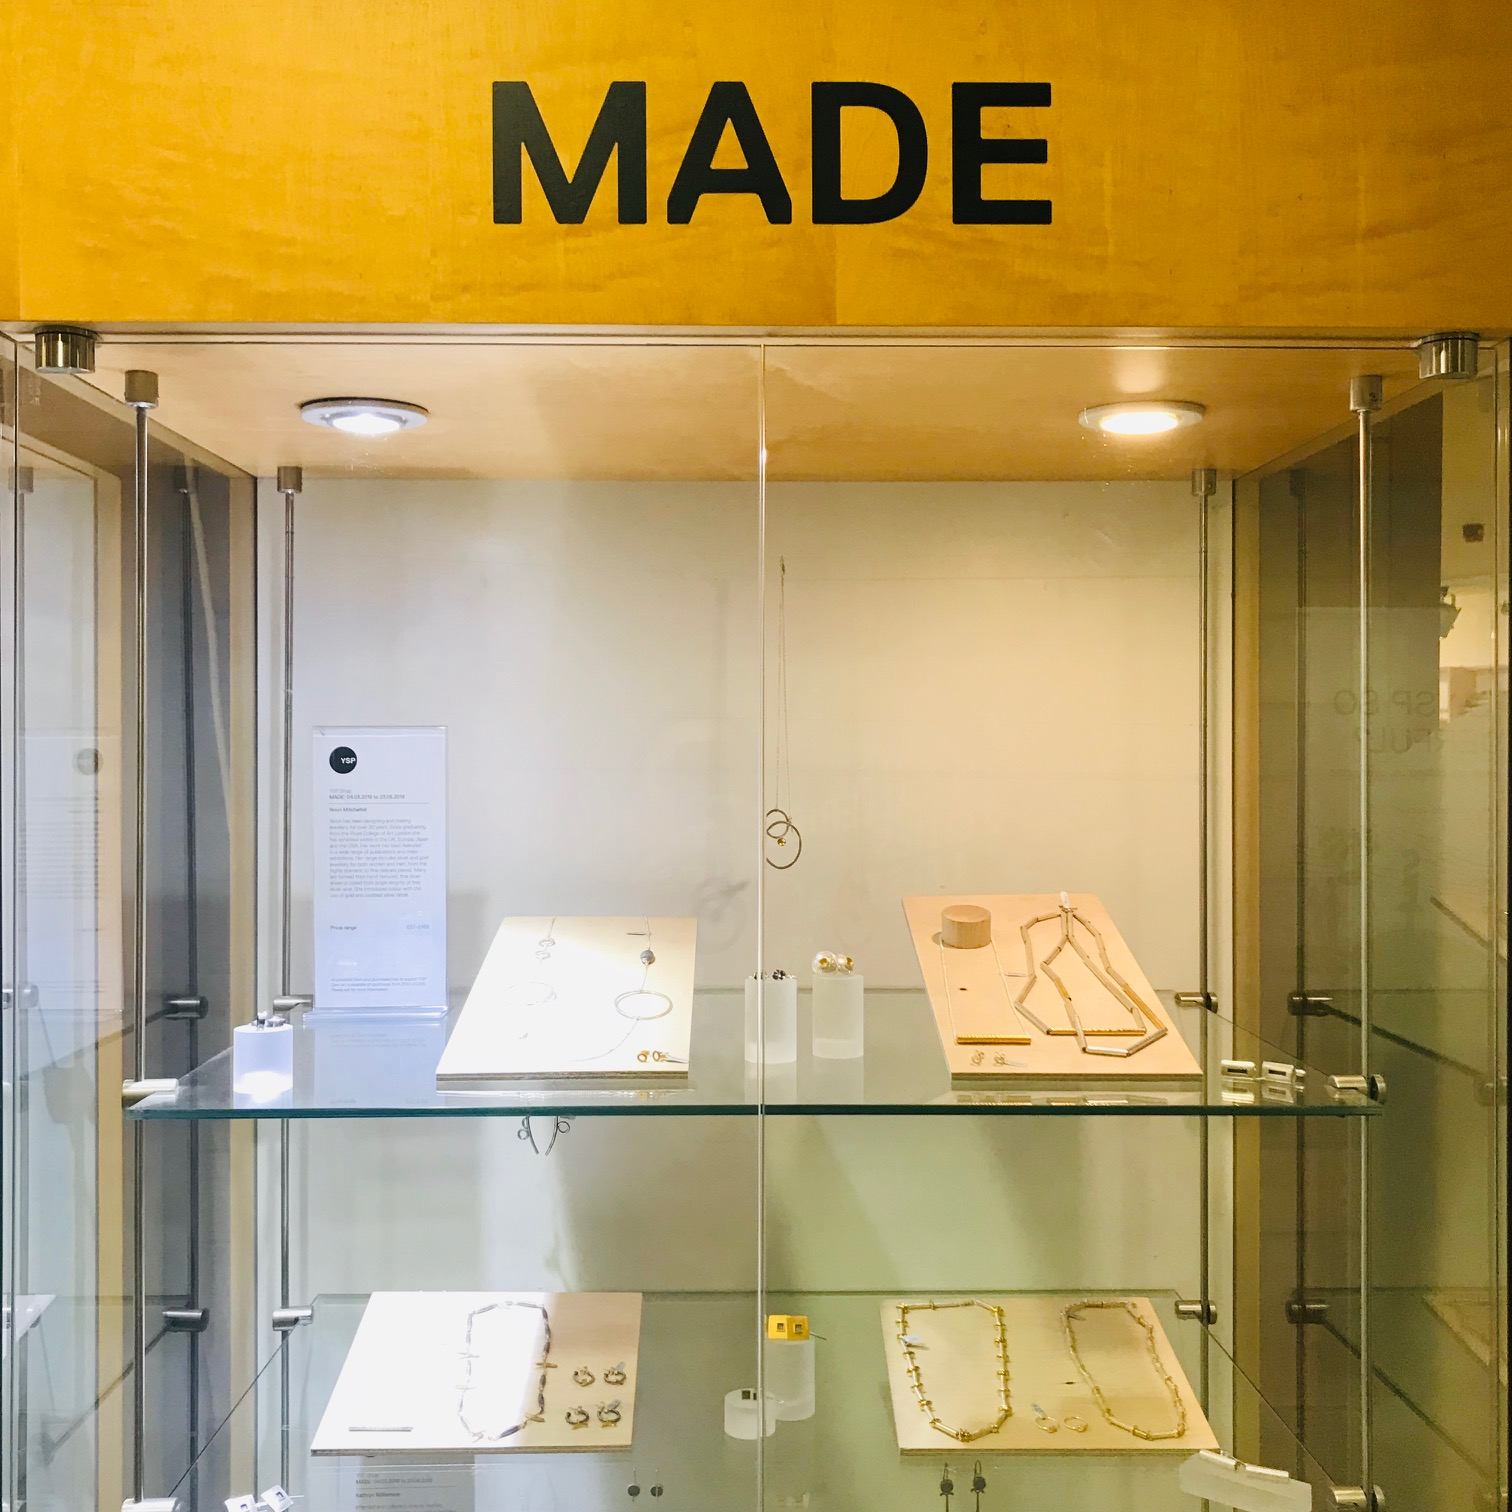 MADE  at Yorkshire Sculpture Park   4th March-23rd June 2019   Yorkshire Sculpture Park  West Bretton,  Wakefield WF4 4LG    https://ysp.org.uk